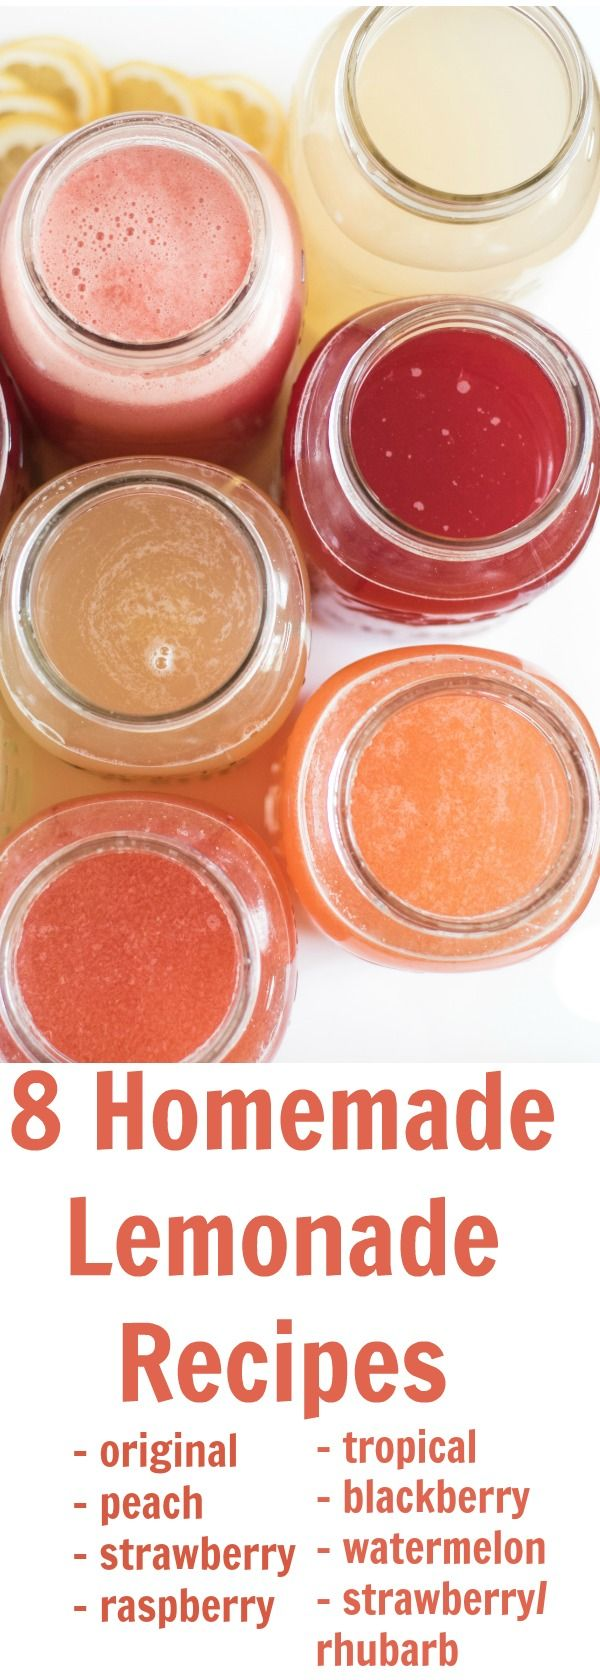 8 different homemade lemonade recipe all in one place! Learn how to make lemonade with fresh lemons or lemon juice in varieties like strawberry lemonade, raspberry lemonade, and even watermelon and tropical lemonade. This post will be your go-to guide for lemonade recipes.